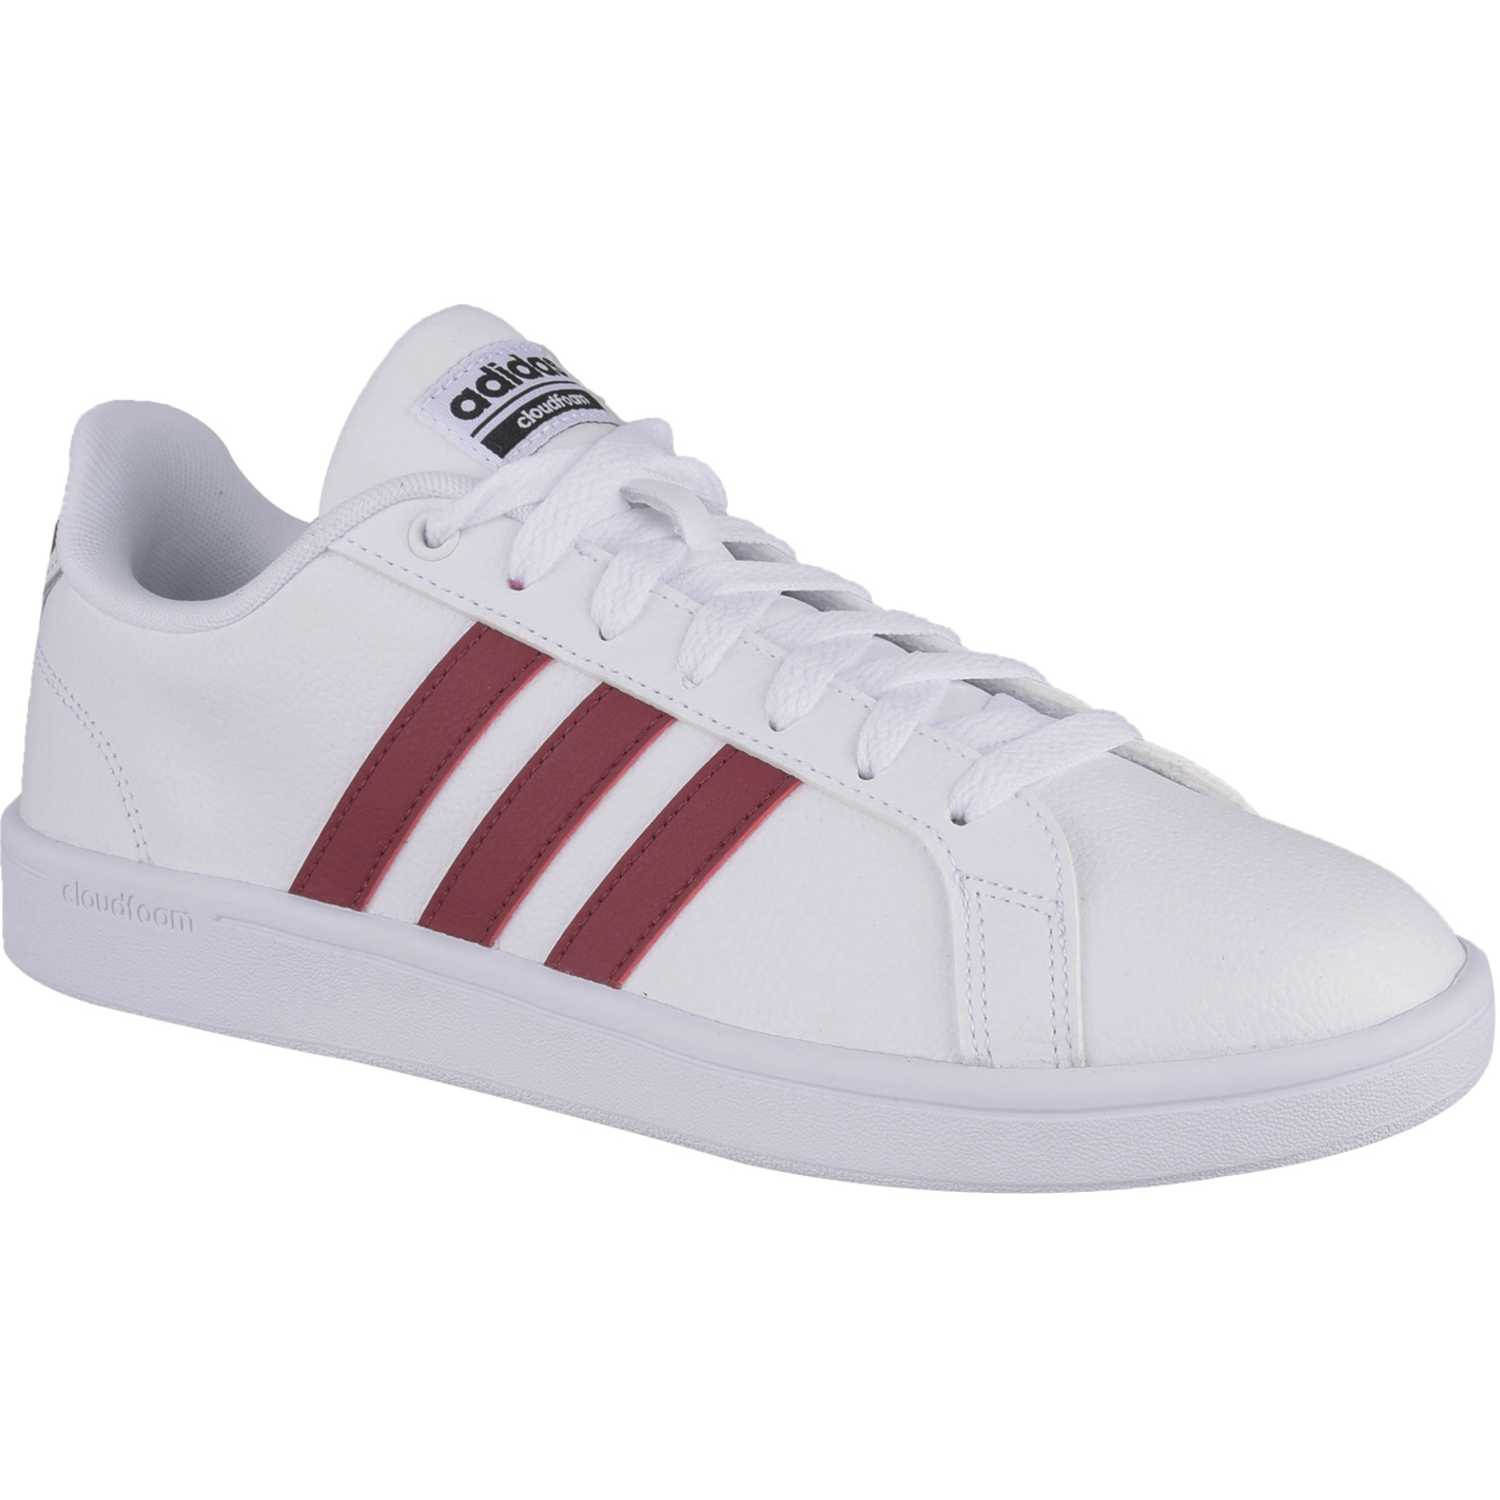 the latest ba57d d19b2 Zapatilla de Hombre adidas NEO Blanco  vino cf advantage